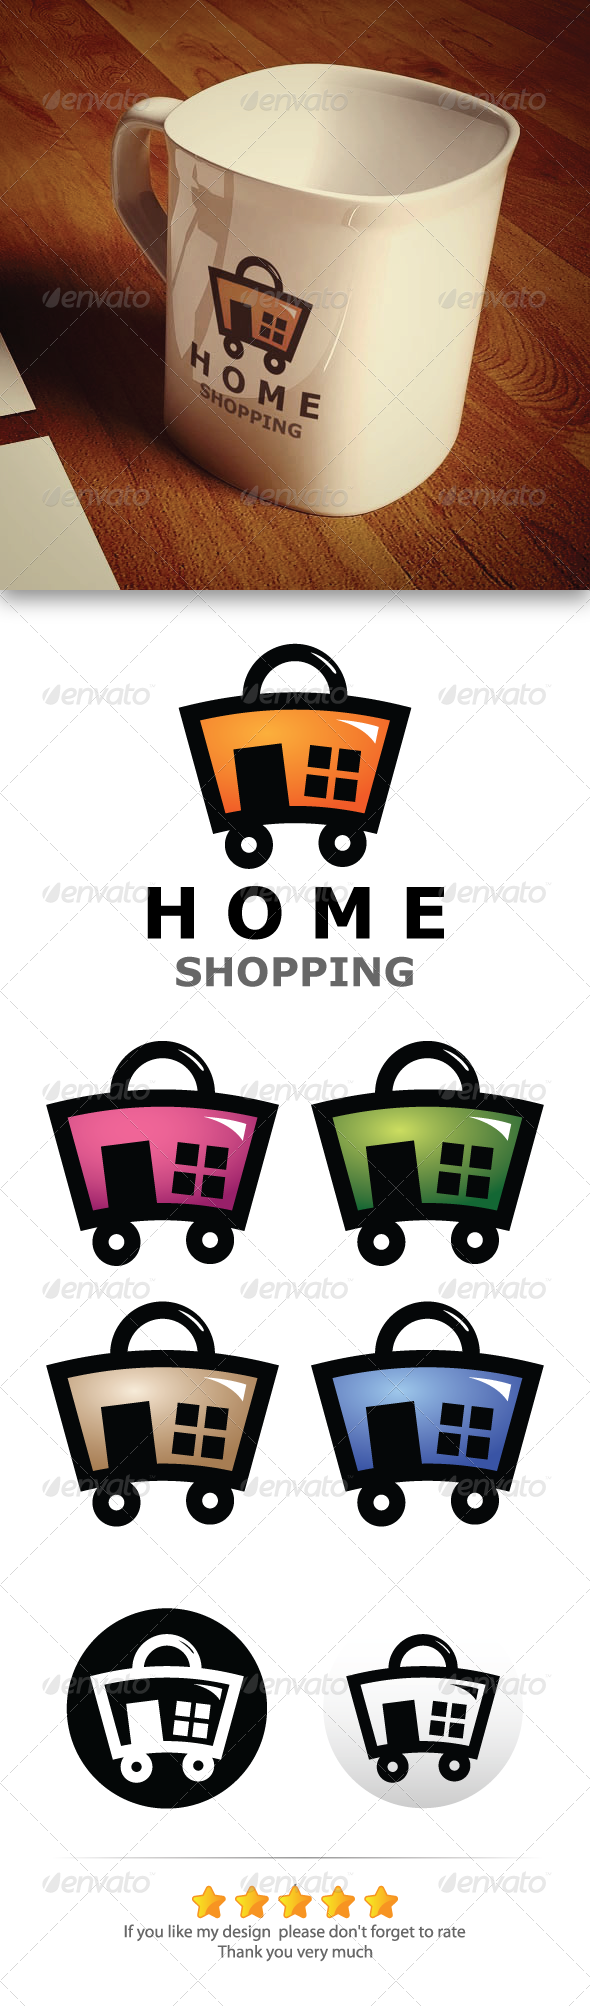 GraphicRiver Home Shopping 5722133